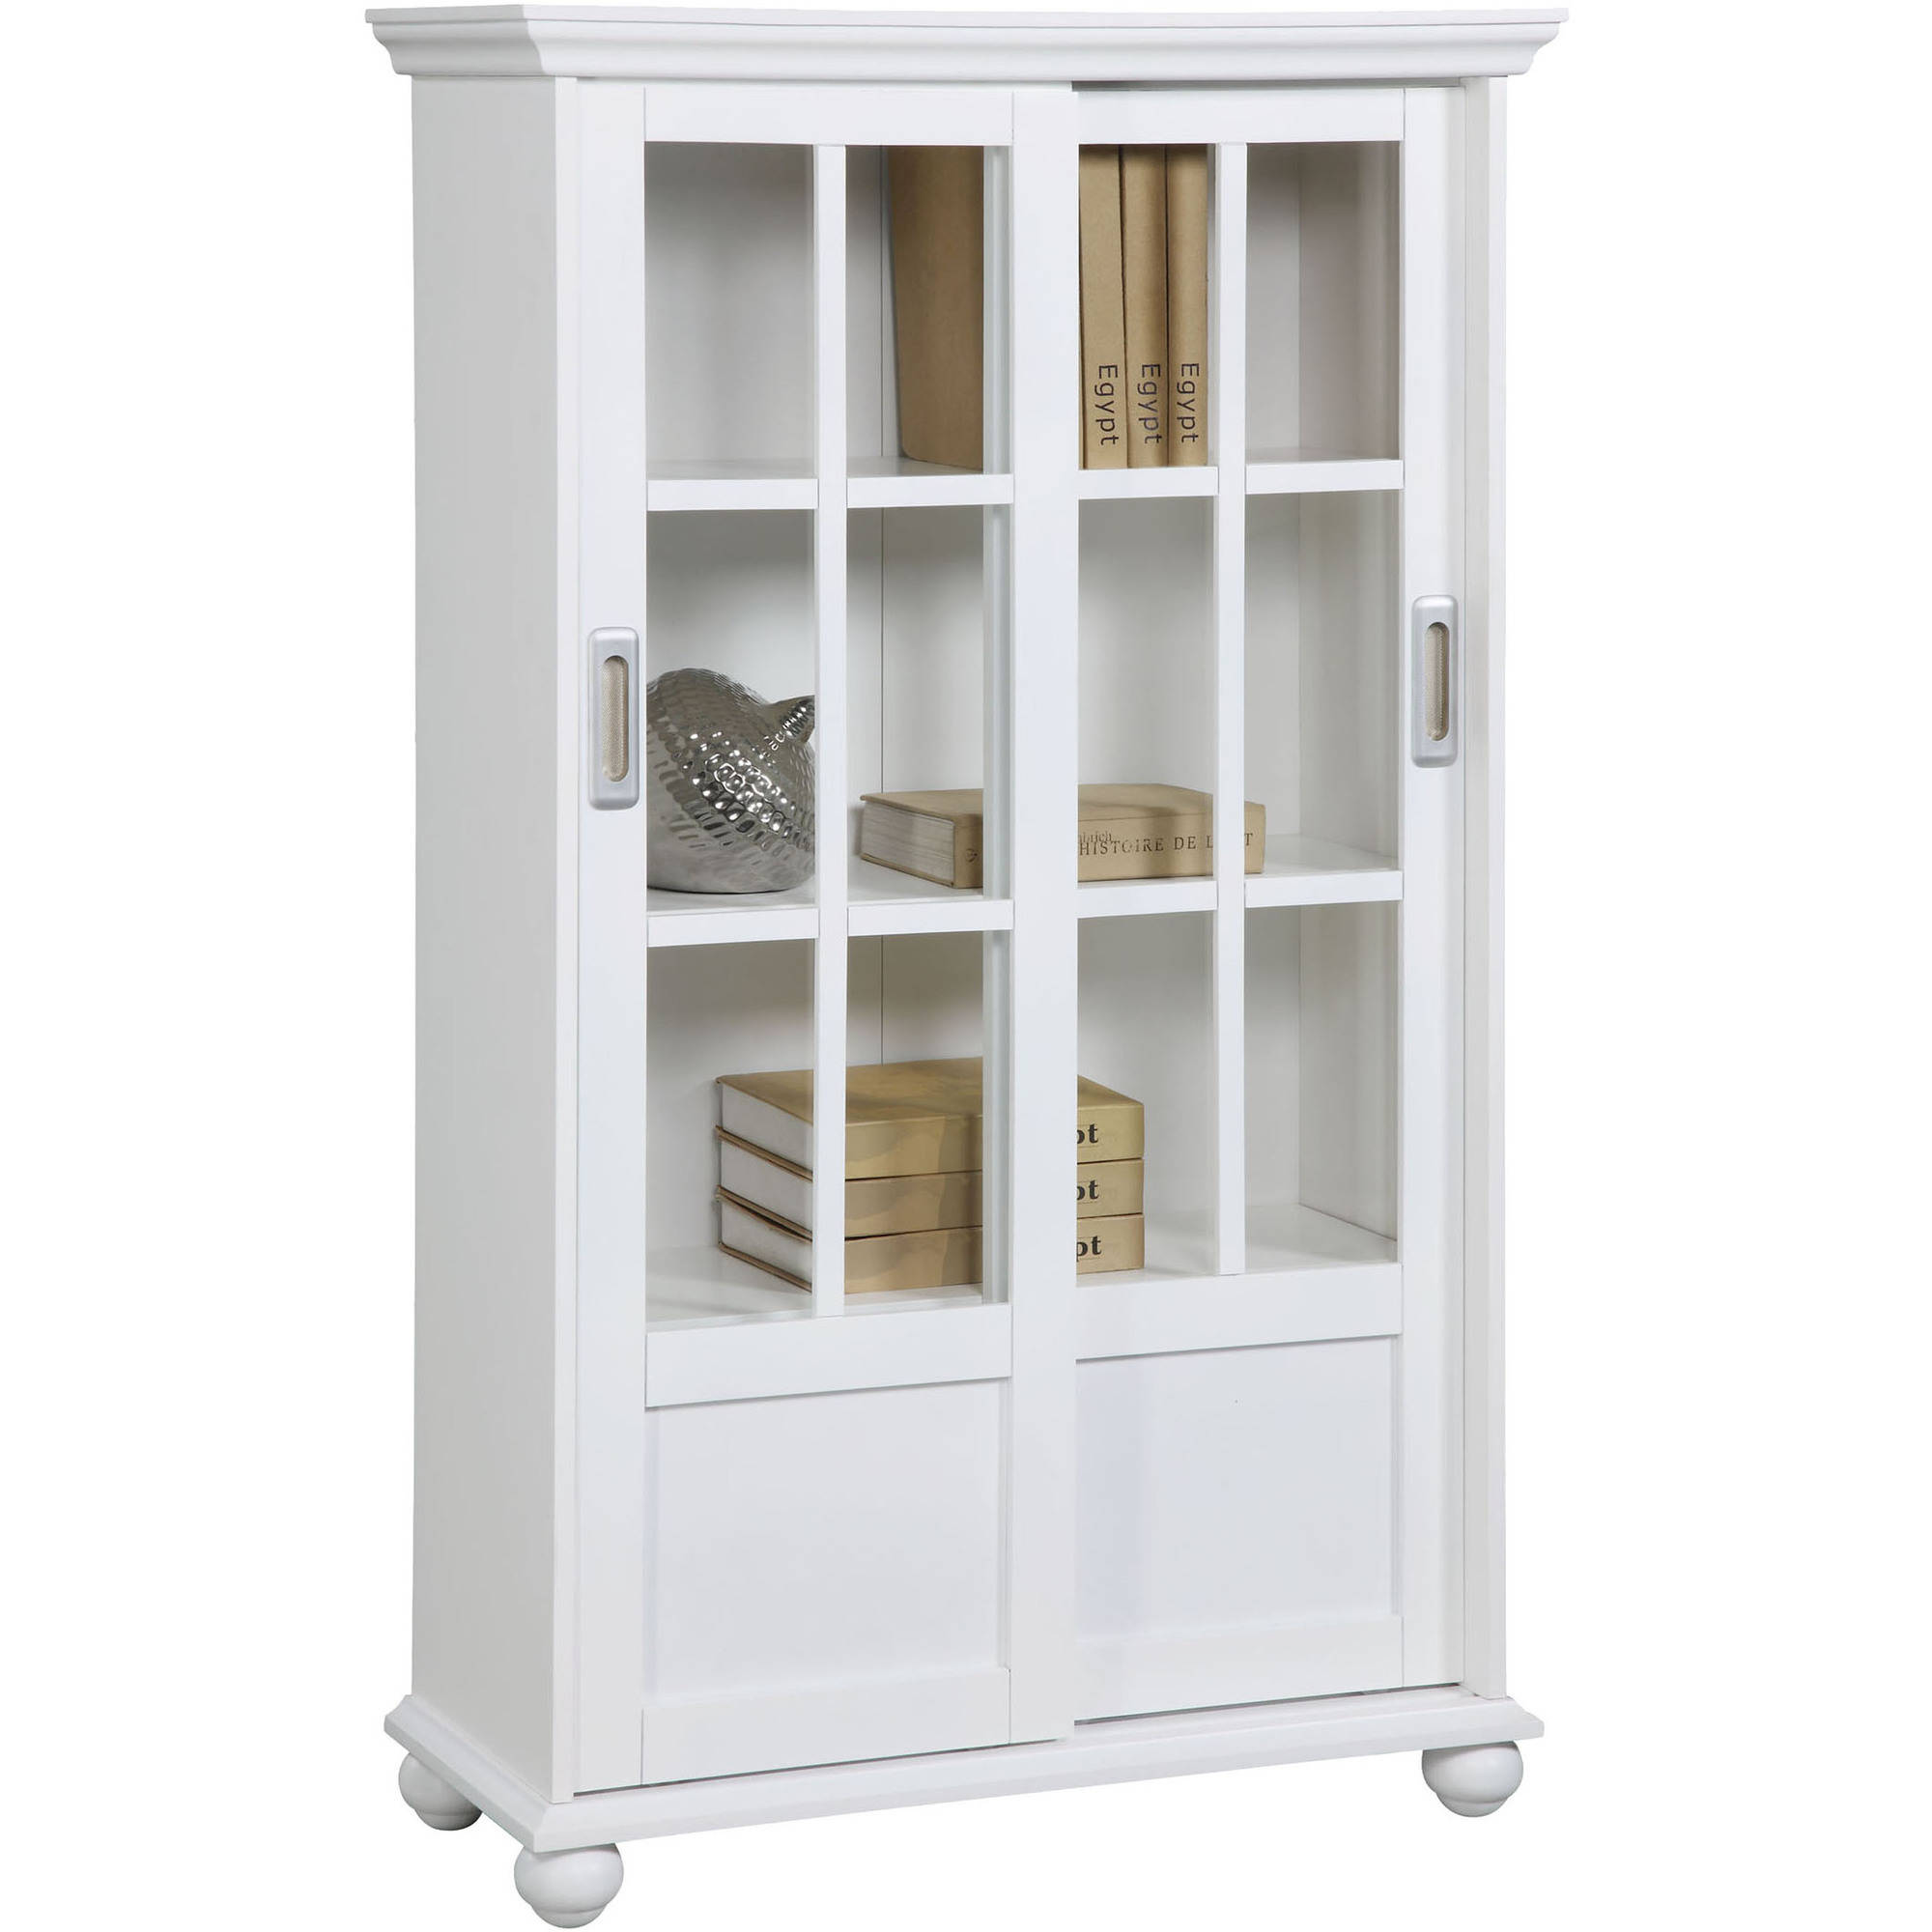 Arron Lane 4-Shelf Sliding Glass Door Bookcase, Multiple Colors -  Walmart.com